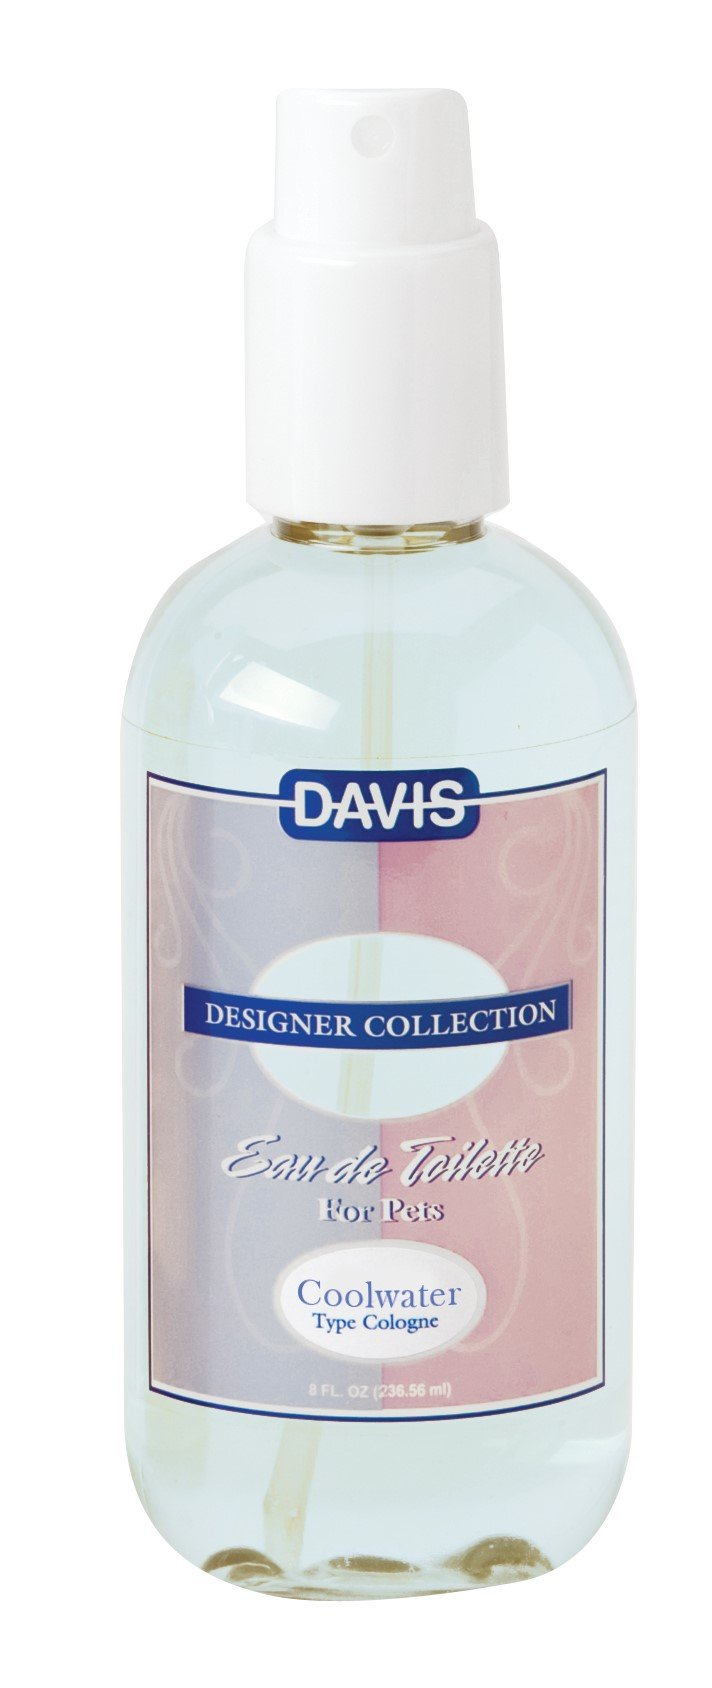 Davis Coolwater Type Pet Cologne, 8 oz